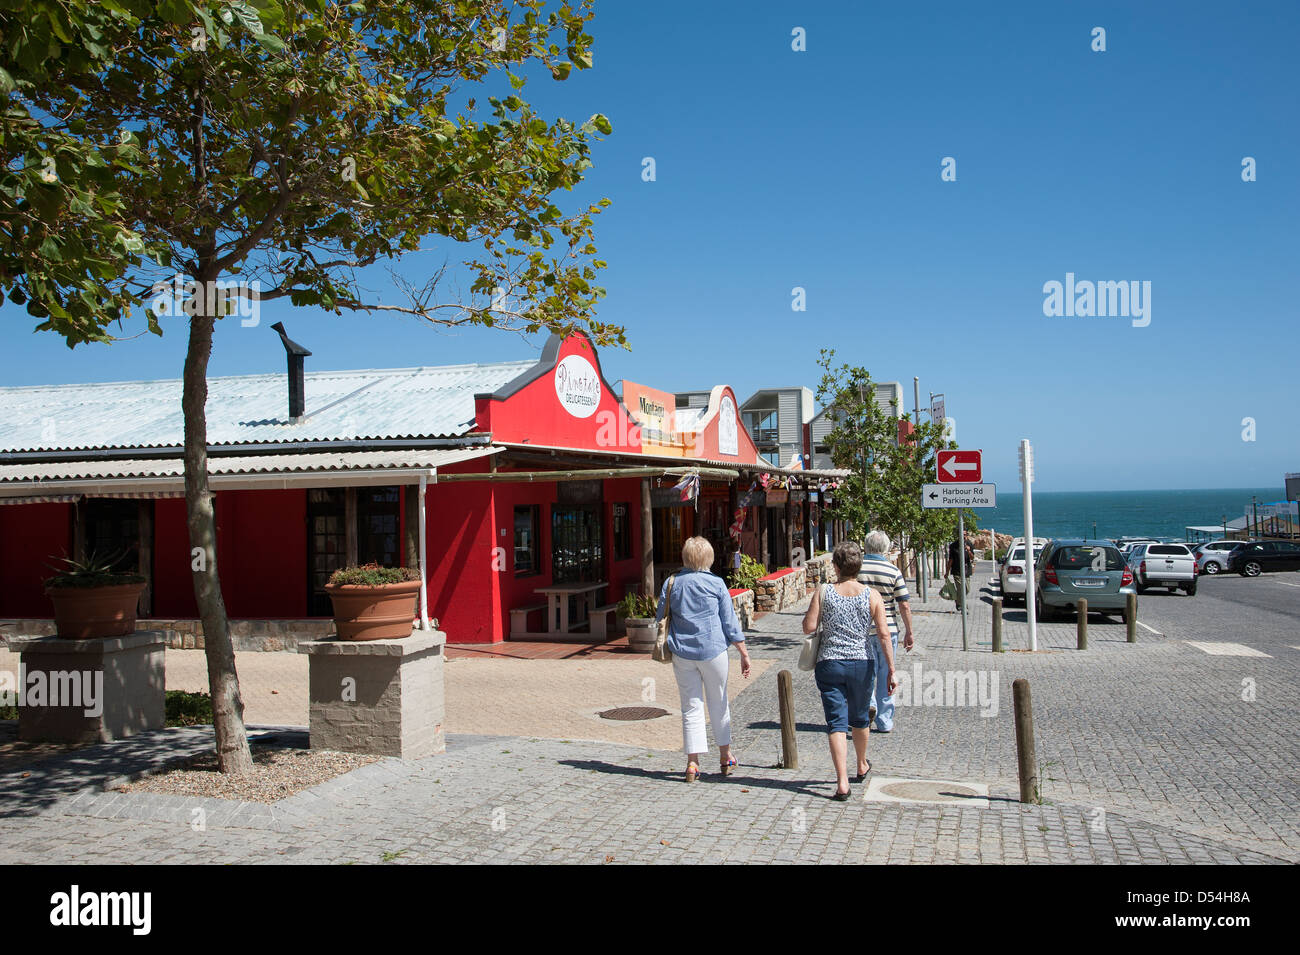 Kleidmond coastal town on Clarence Drive coastal route in the Western Cape South Africa - Stock Image